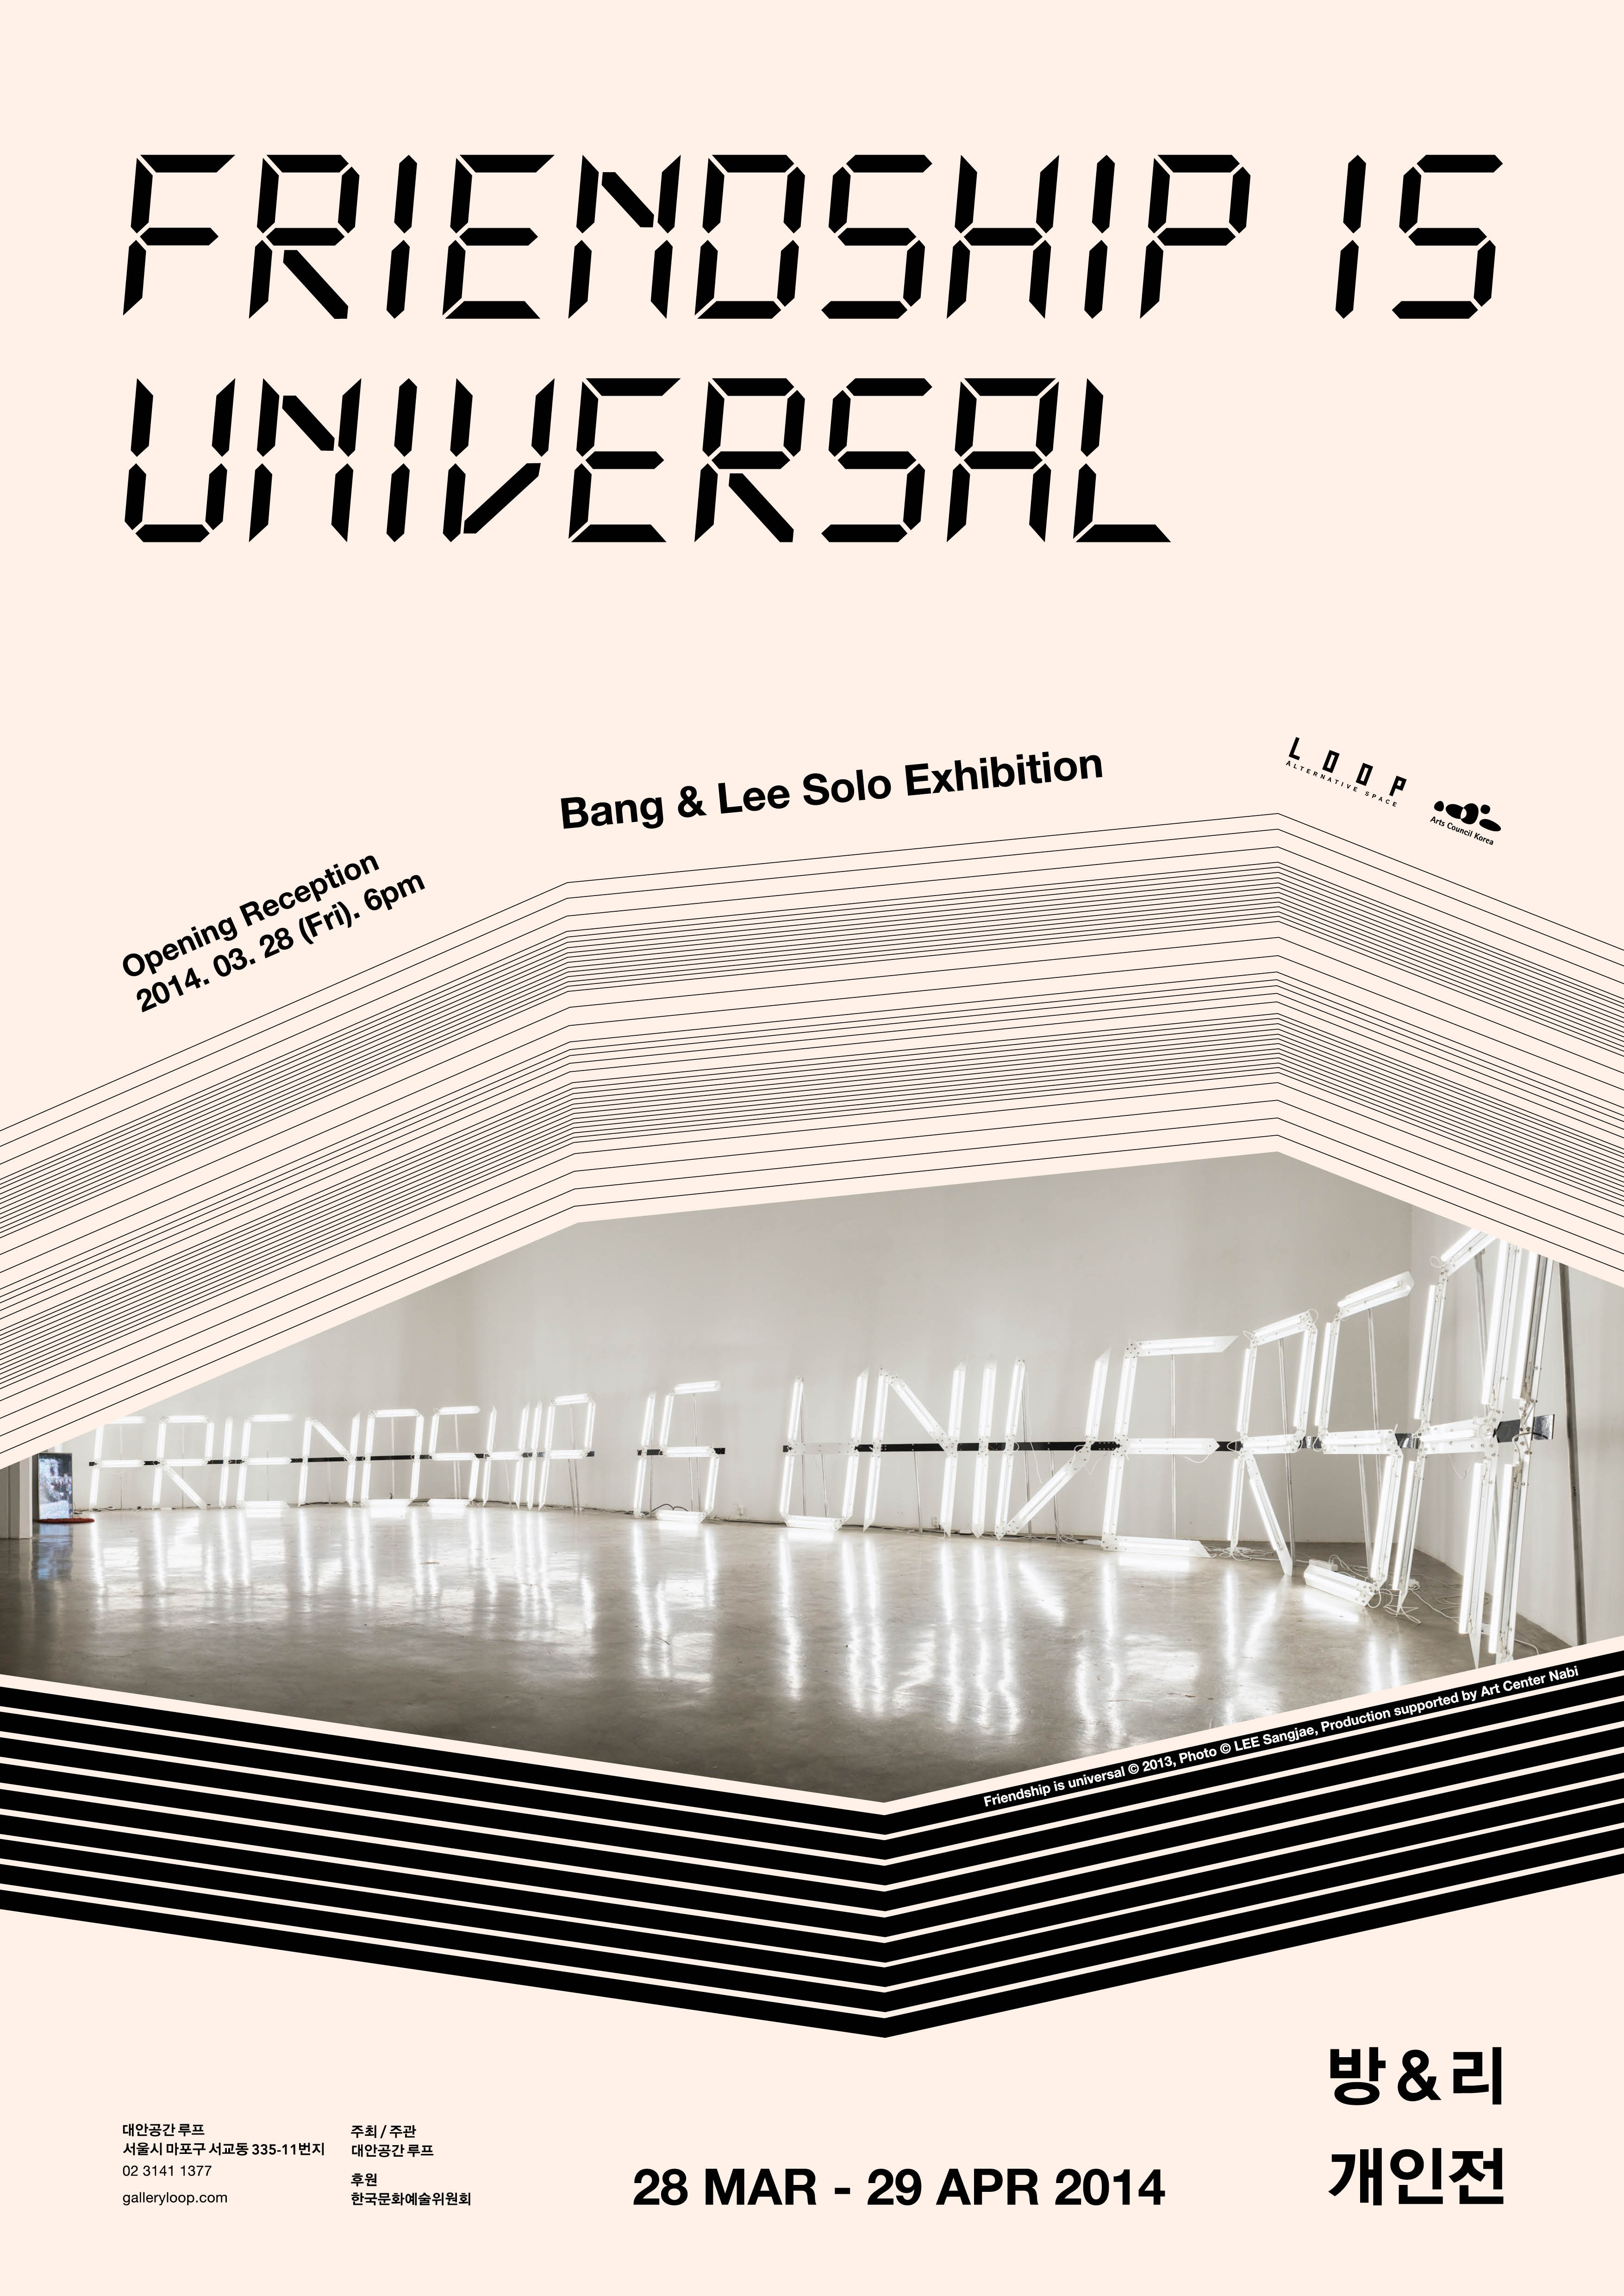 Bang & Lee Solo Exhibition: Friendship Is Universal